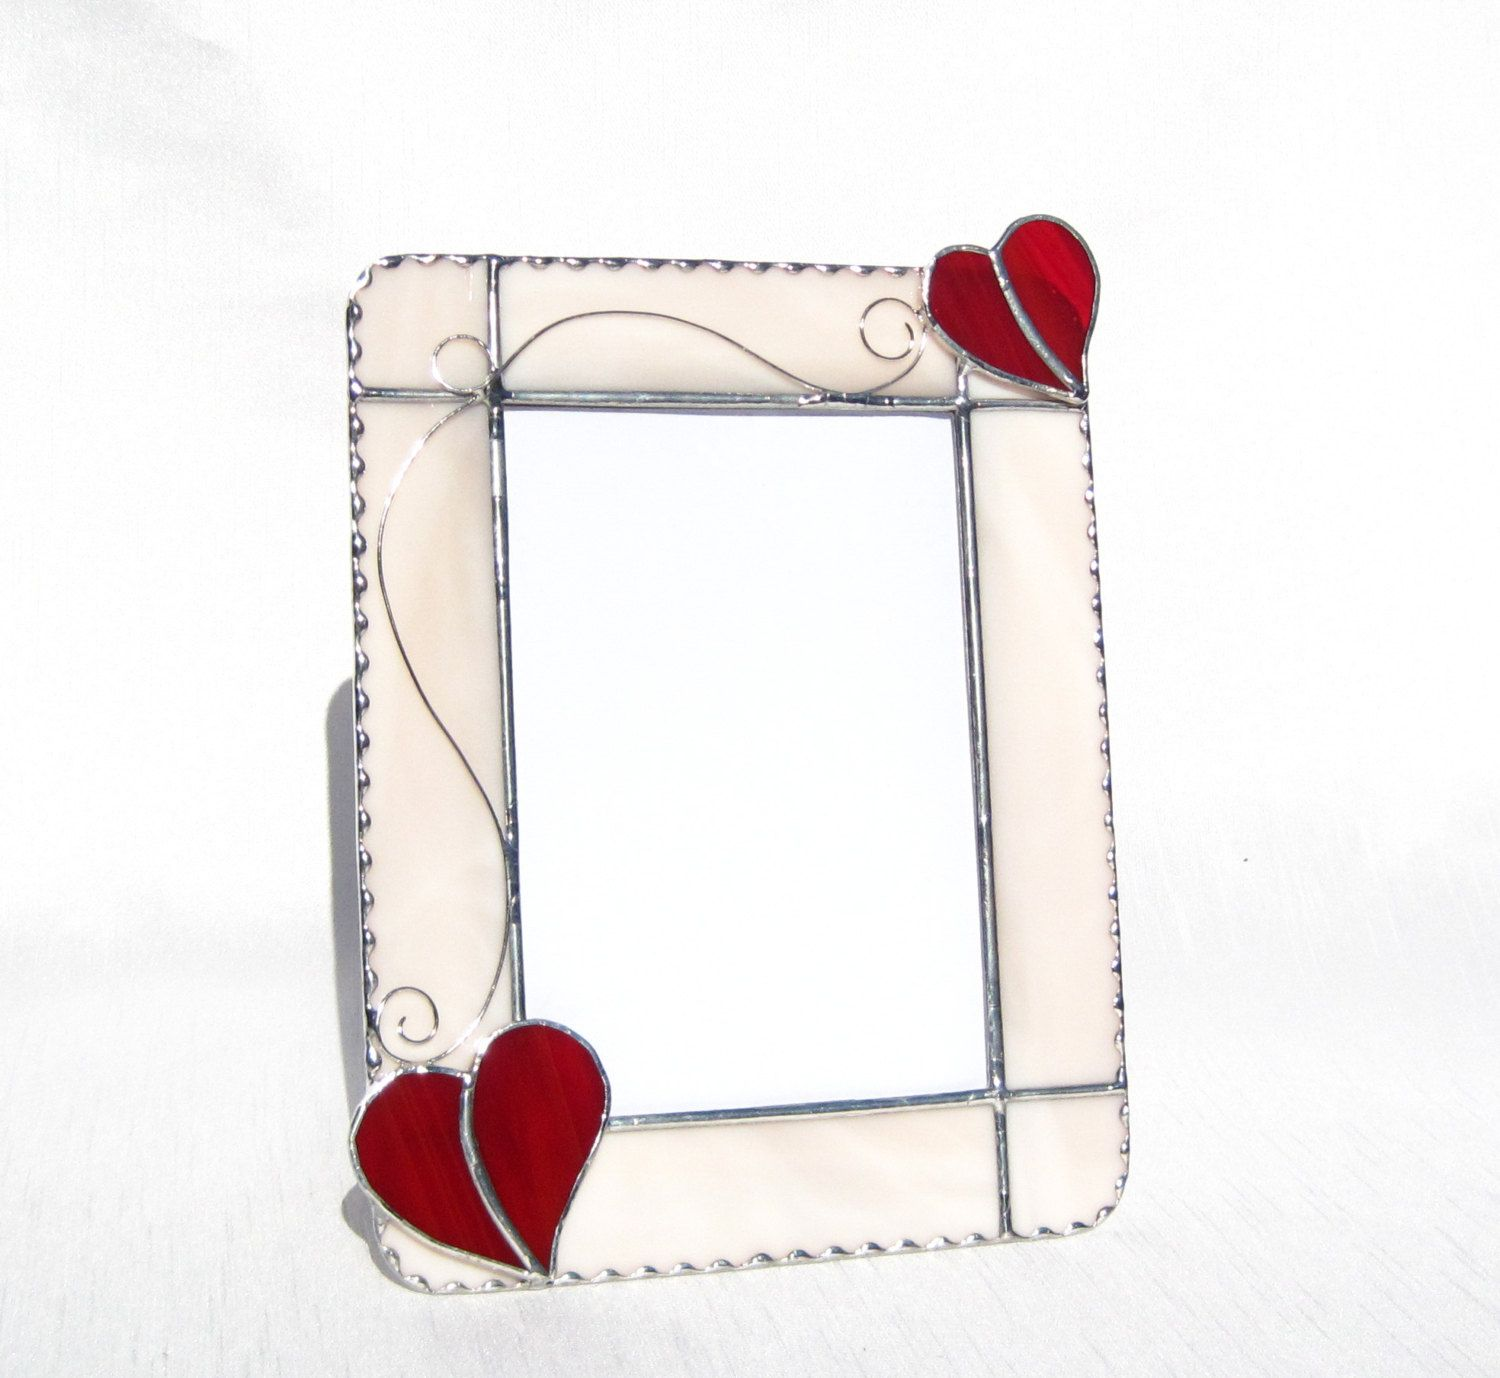 love me tender frame 5 x 7 stained glass frame picture frame heart picture frame glass love frame red heart frame portrait picture frame